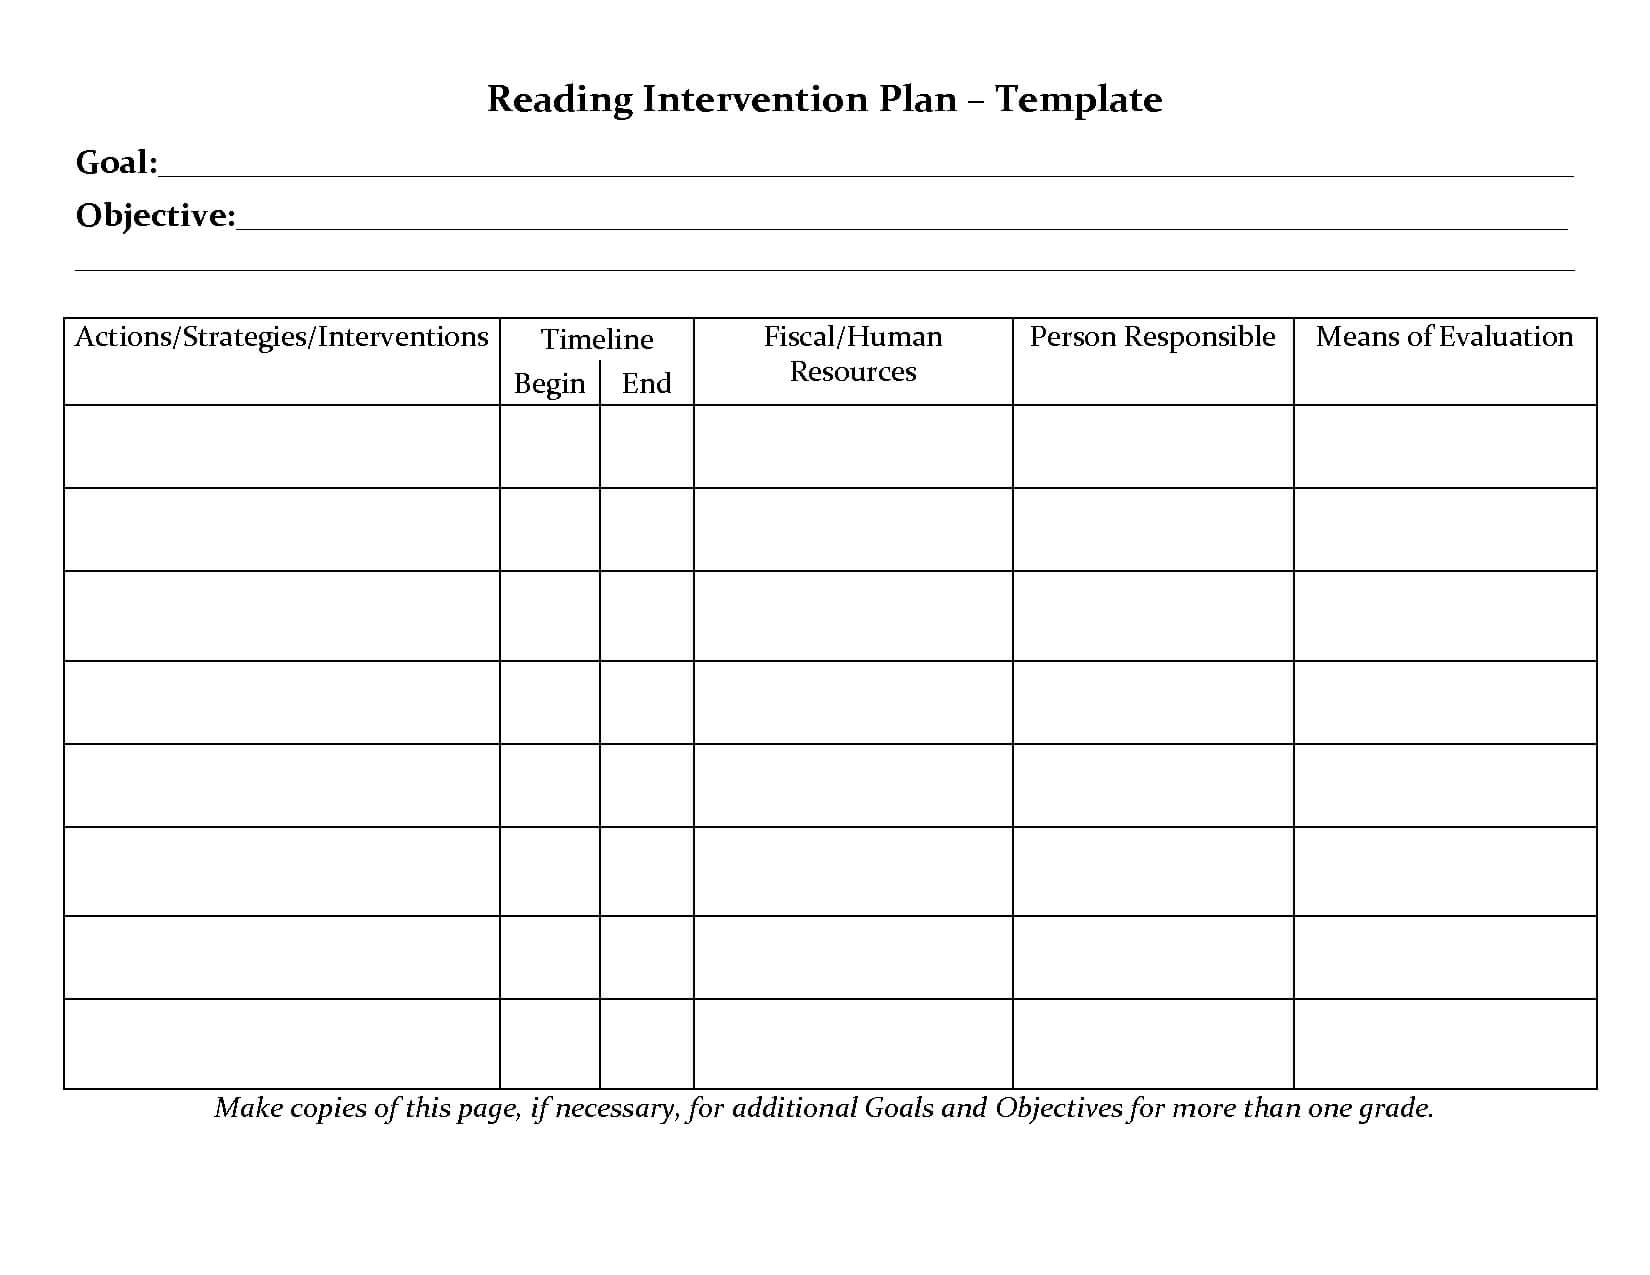 Student Planner Templates | Reading Intervention Plan inside Intervention Report Template